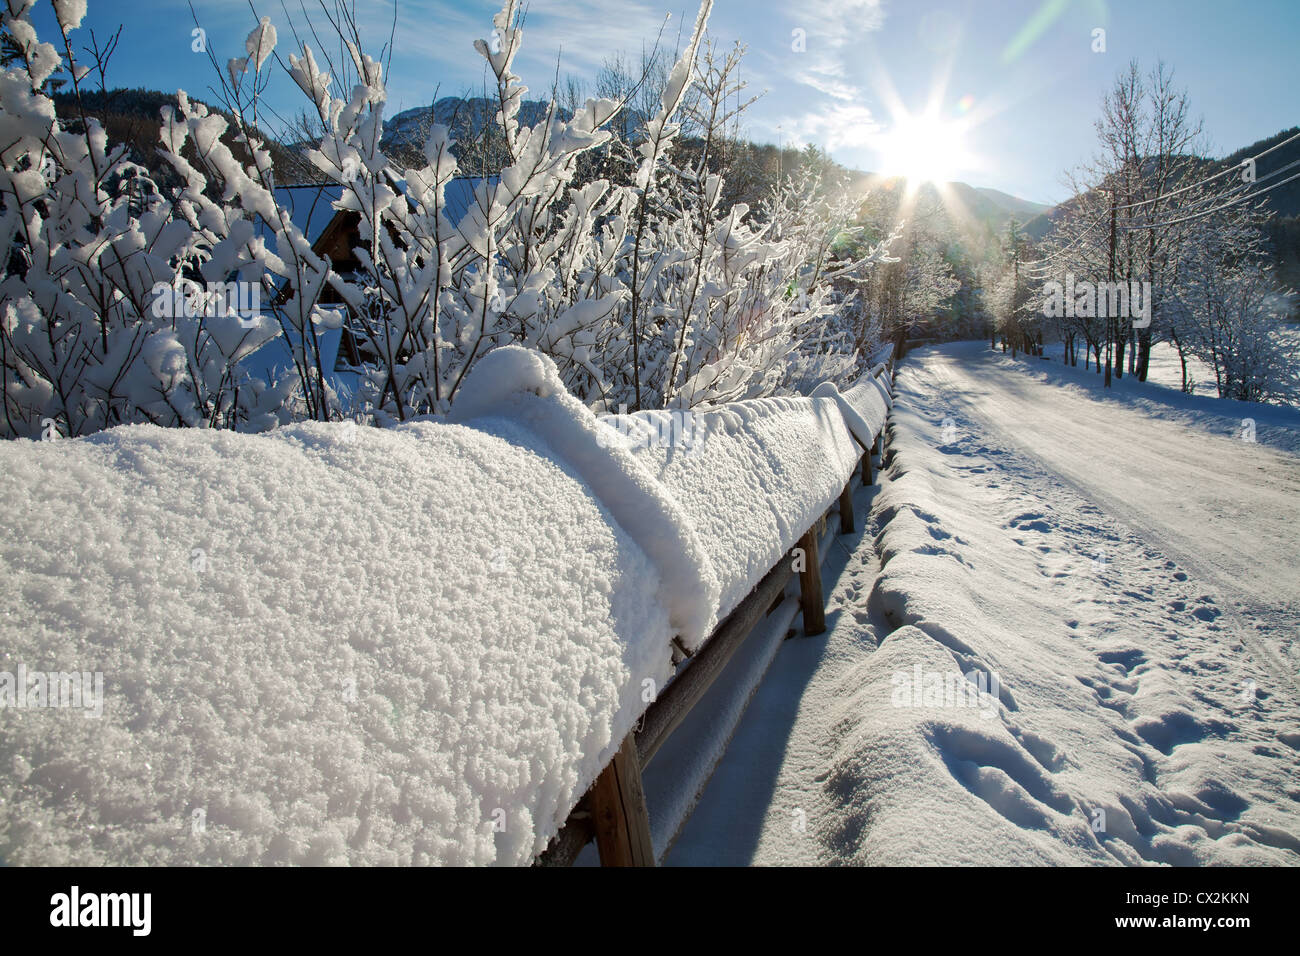 Winter landscape on the outskirts of the city - Stock Image